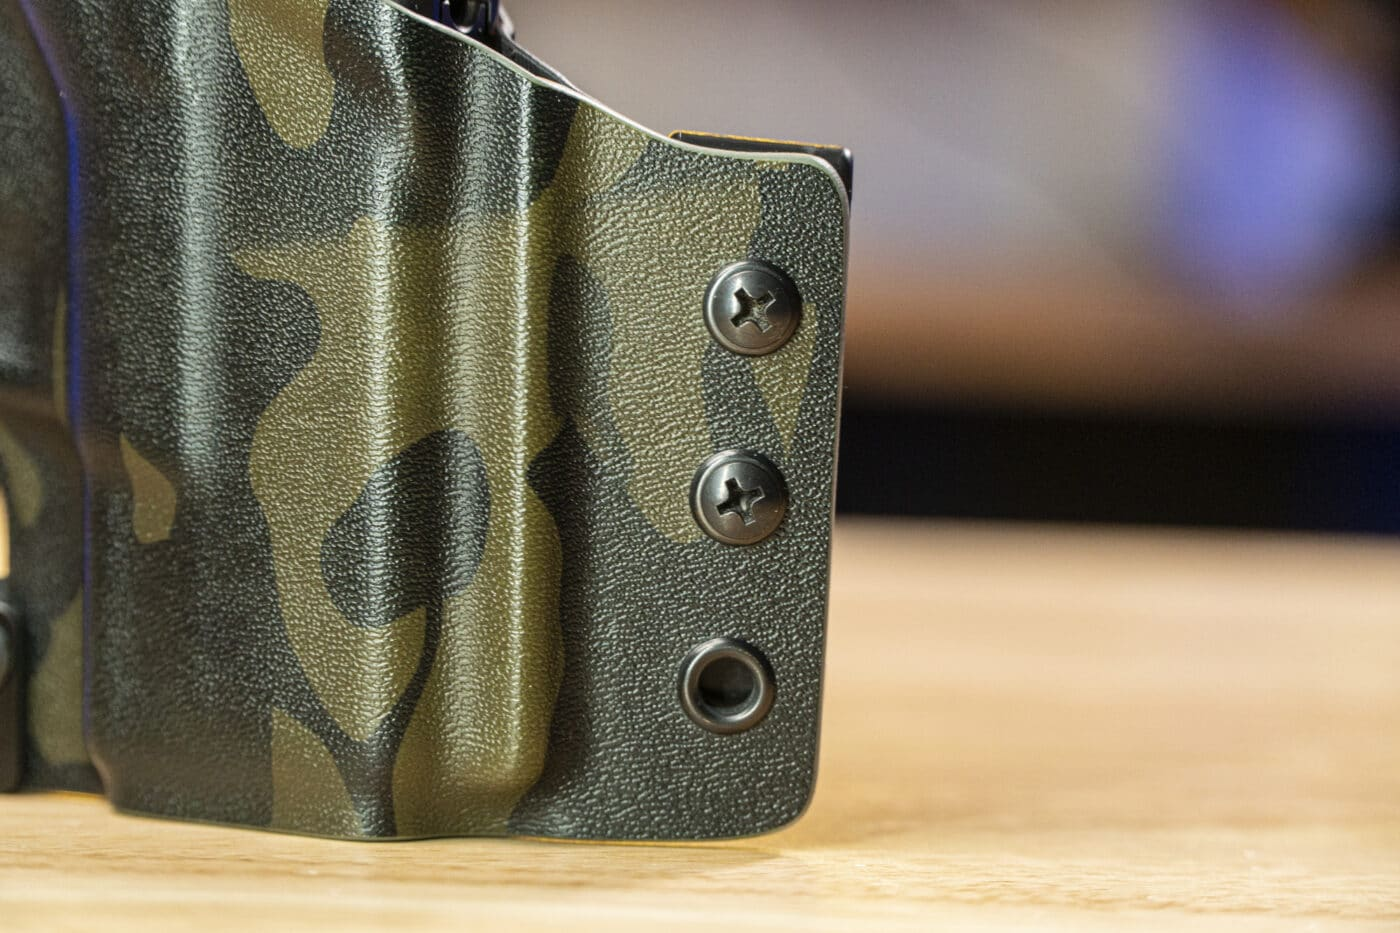 Adjustment holes on the Tulster Contour holster